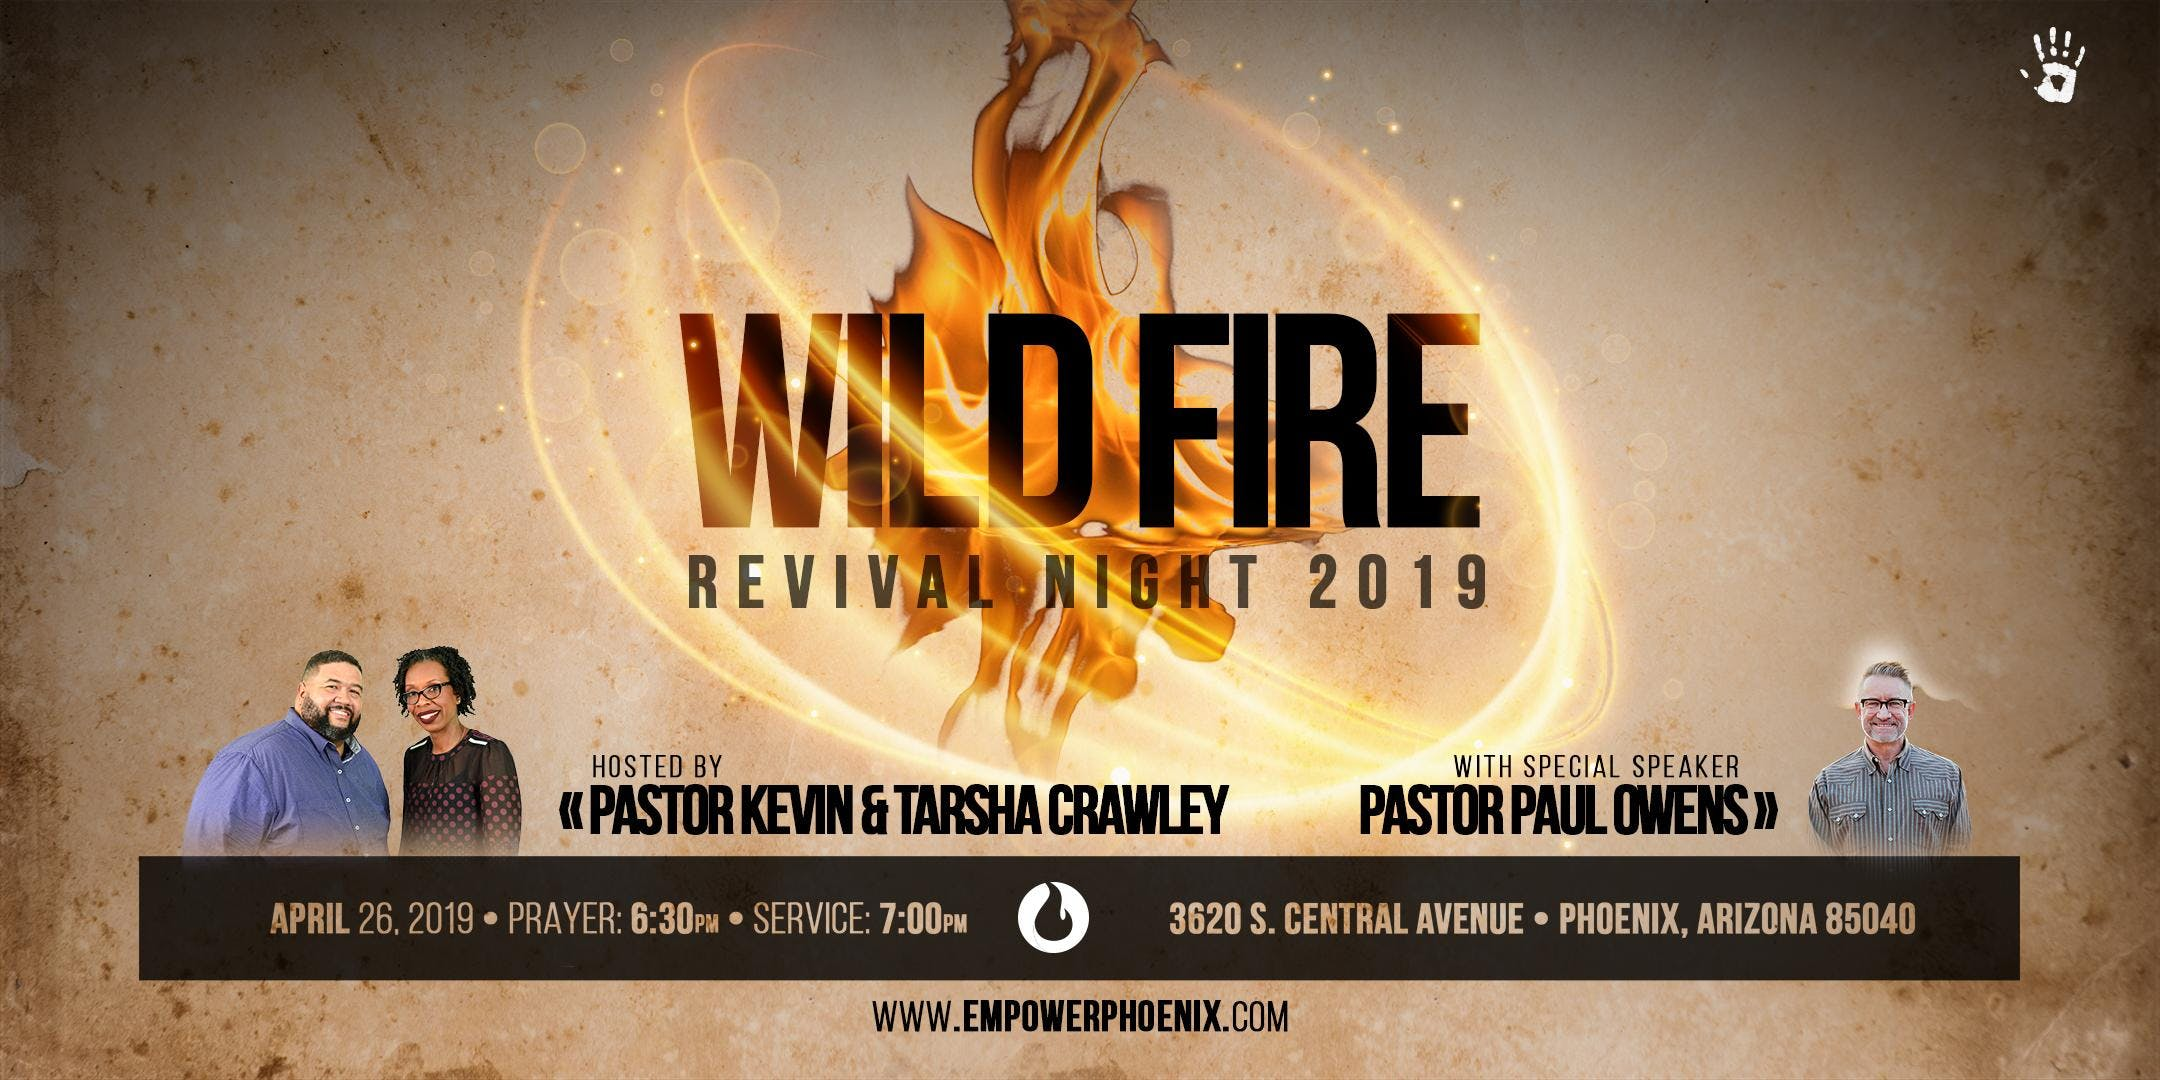 WildFire Revival Night